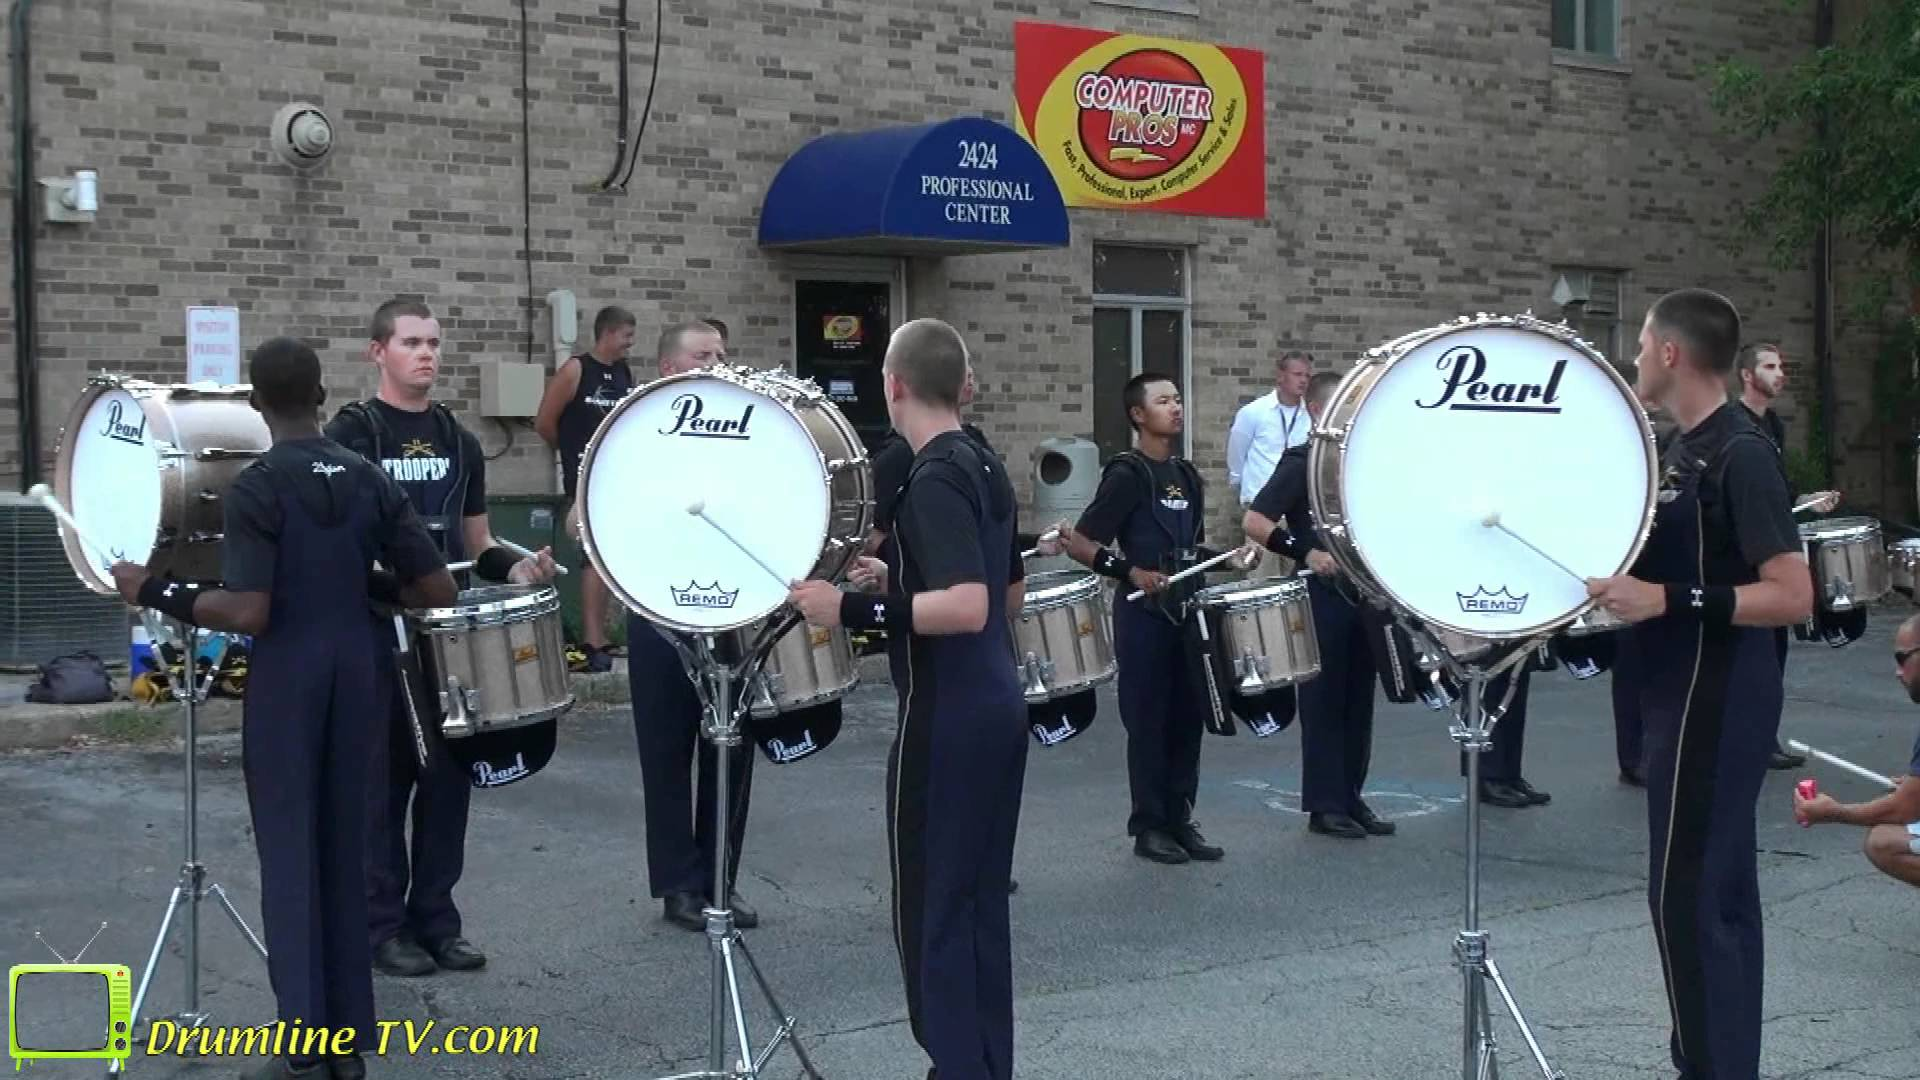 Troopers Drumline 2012 – Pageant of Drums Show – Michigan City, Indiana 6-30-2012